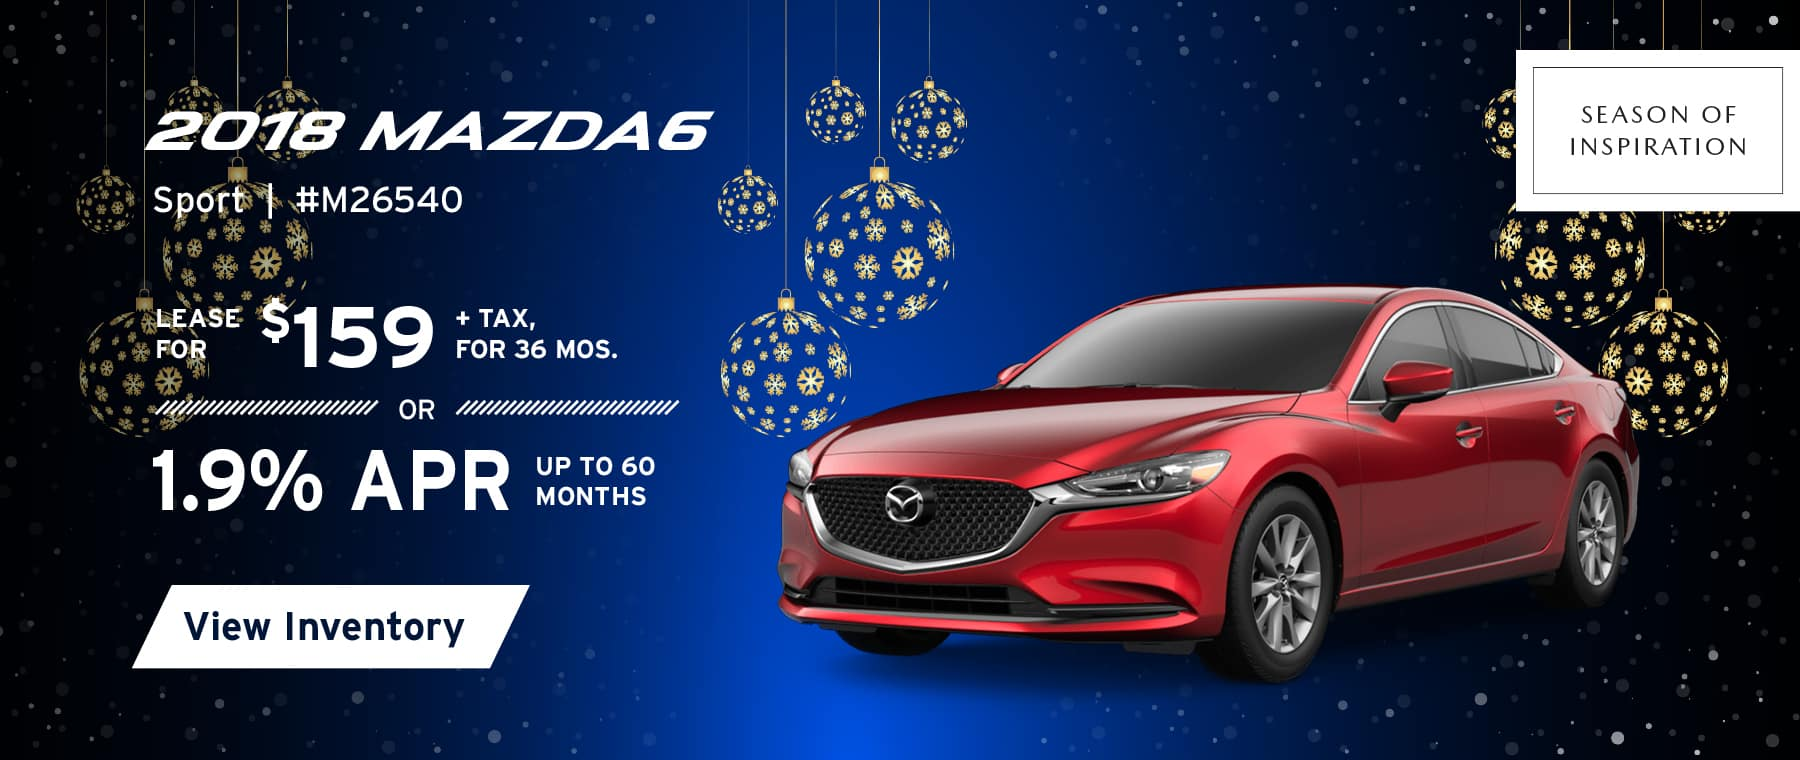 Lease the 2018 Mazda6 Sport for $159, plus tax for 36 months, or 1.9% APR up to 60 months.